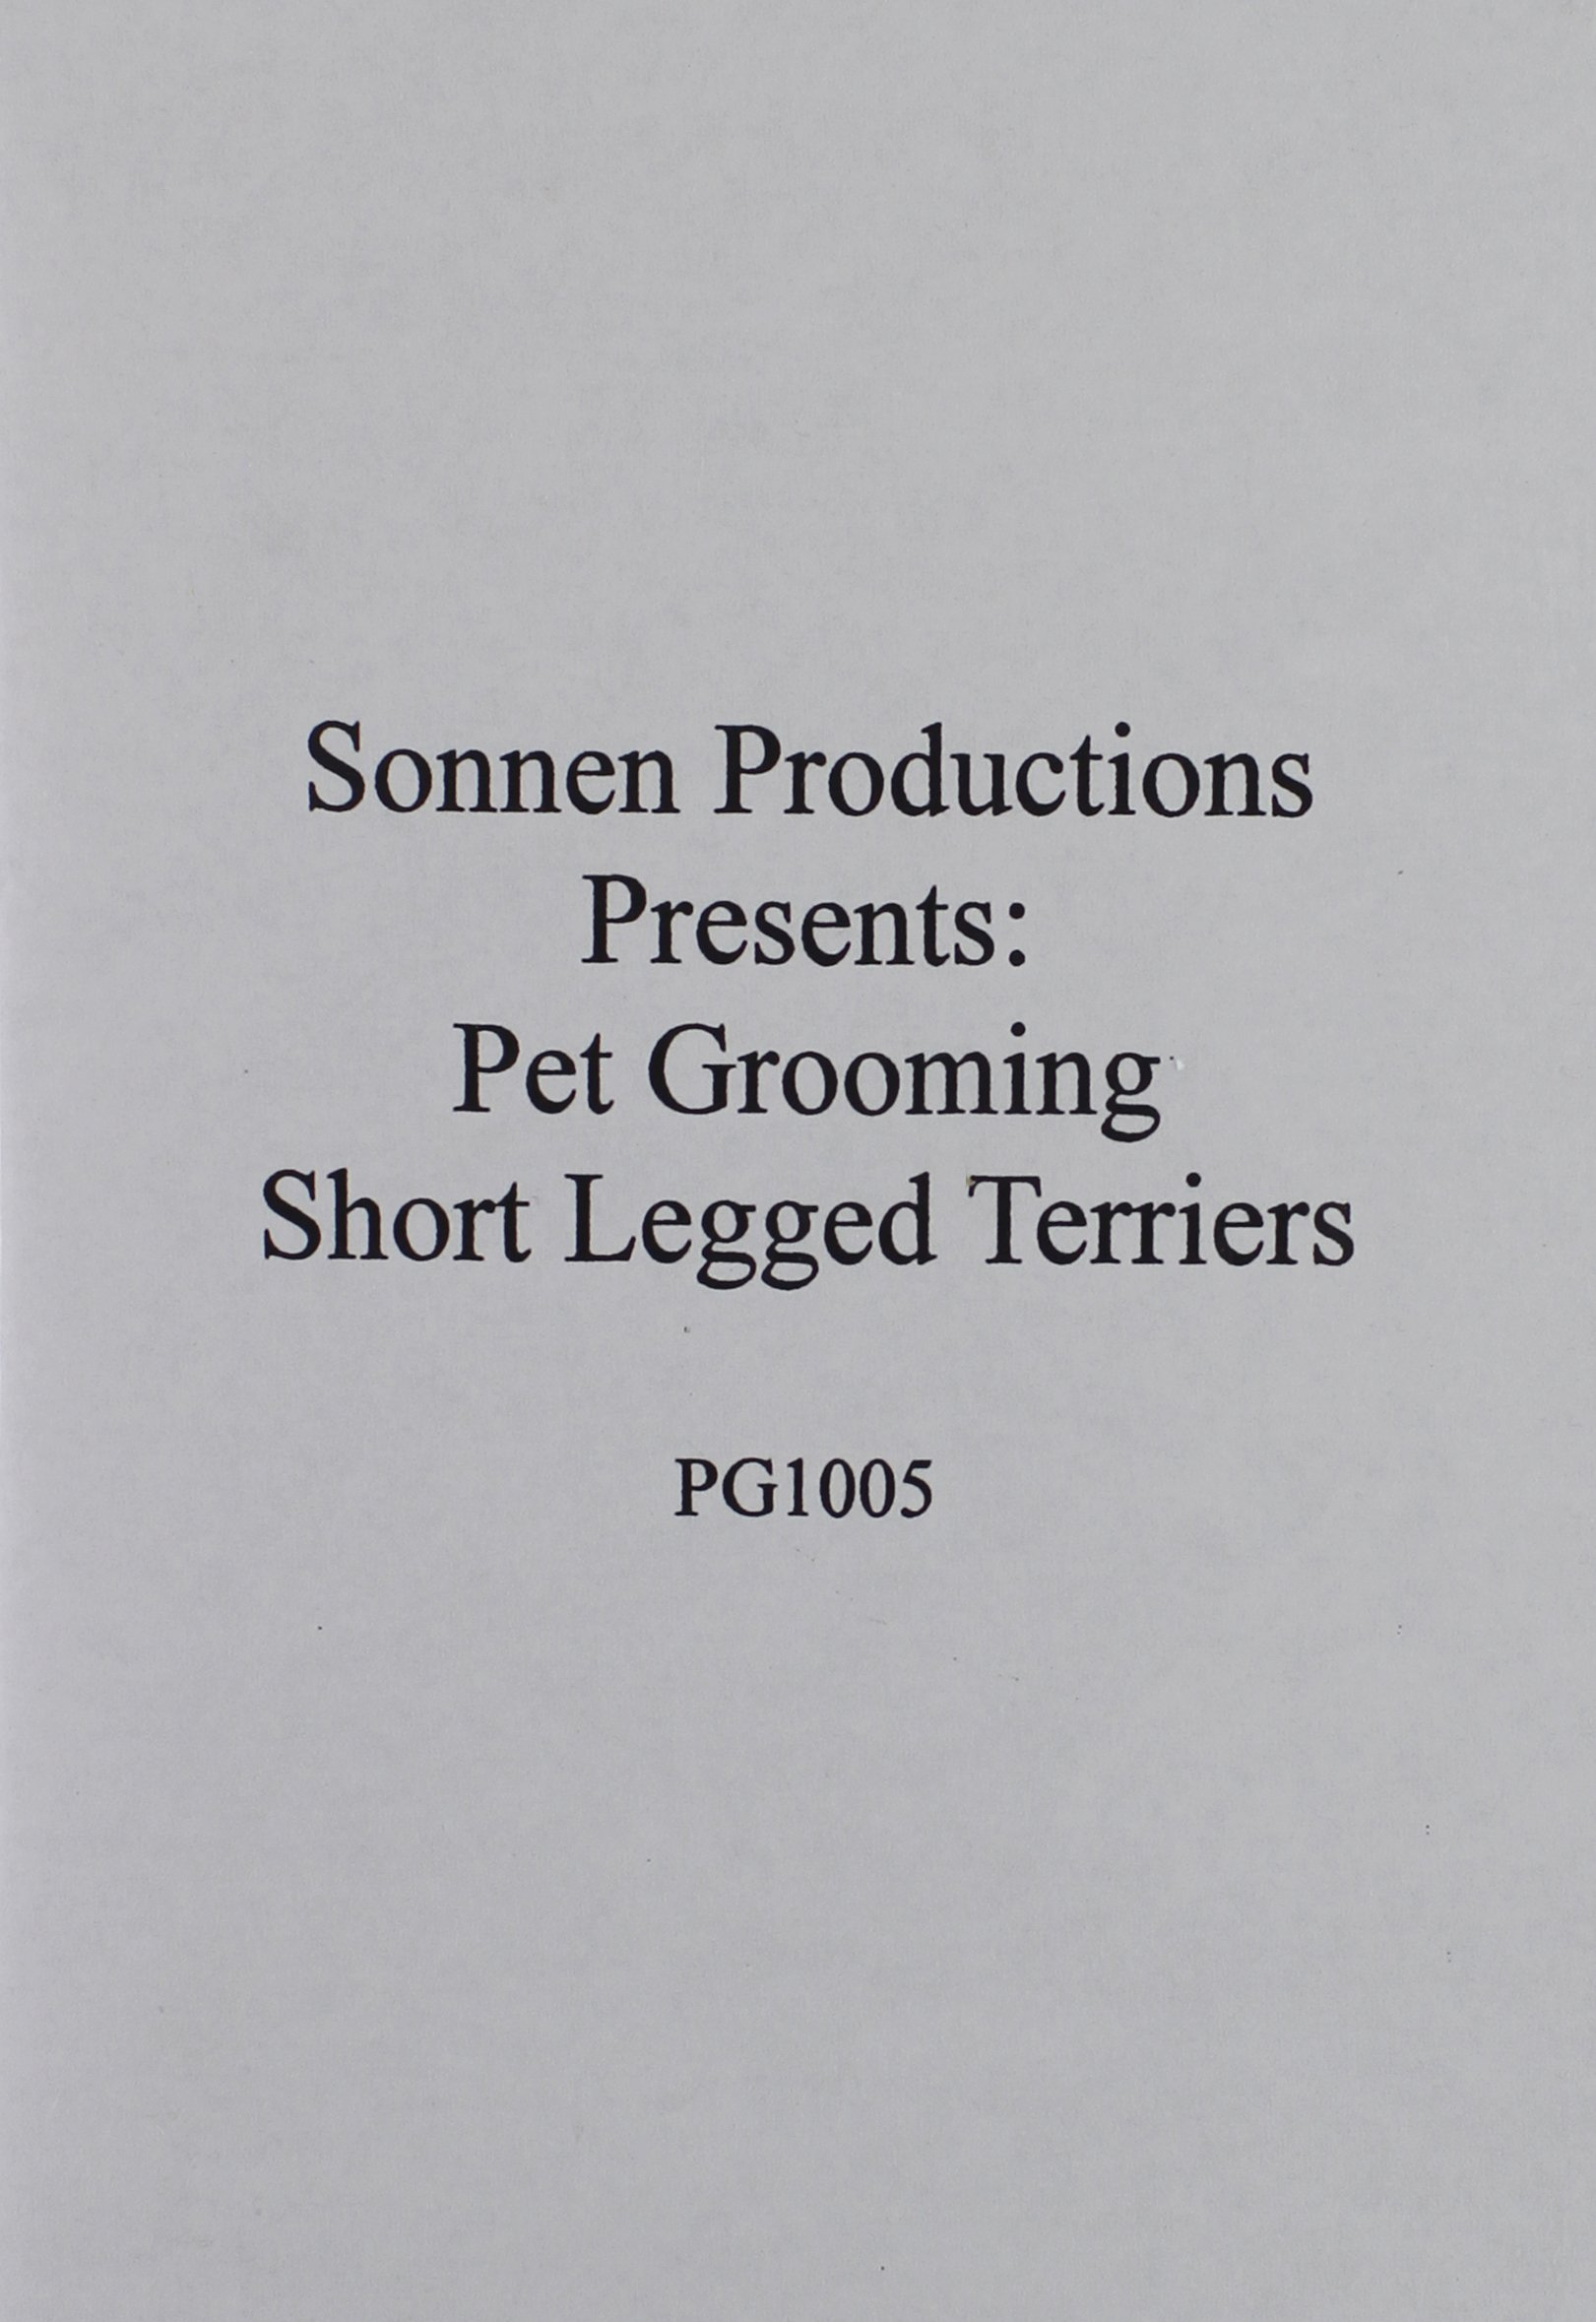 Sonnen Productions Pet Grooming DVD, Short-Legged Terriers by Sonnen Productions